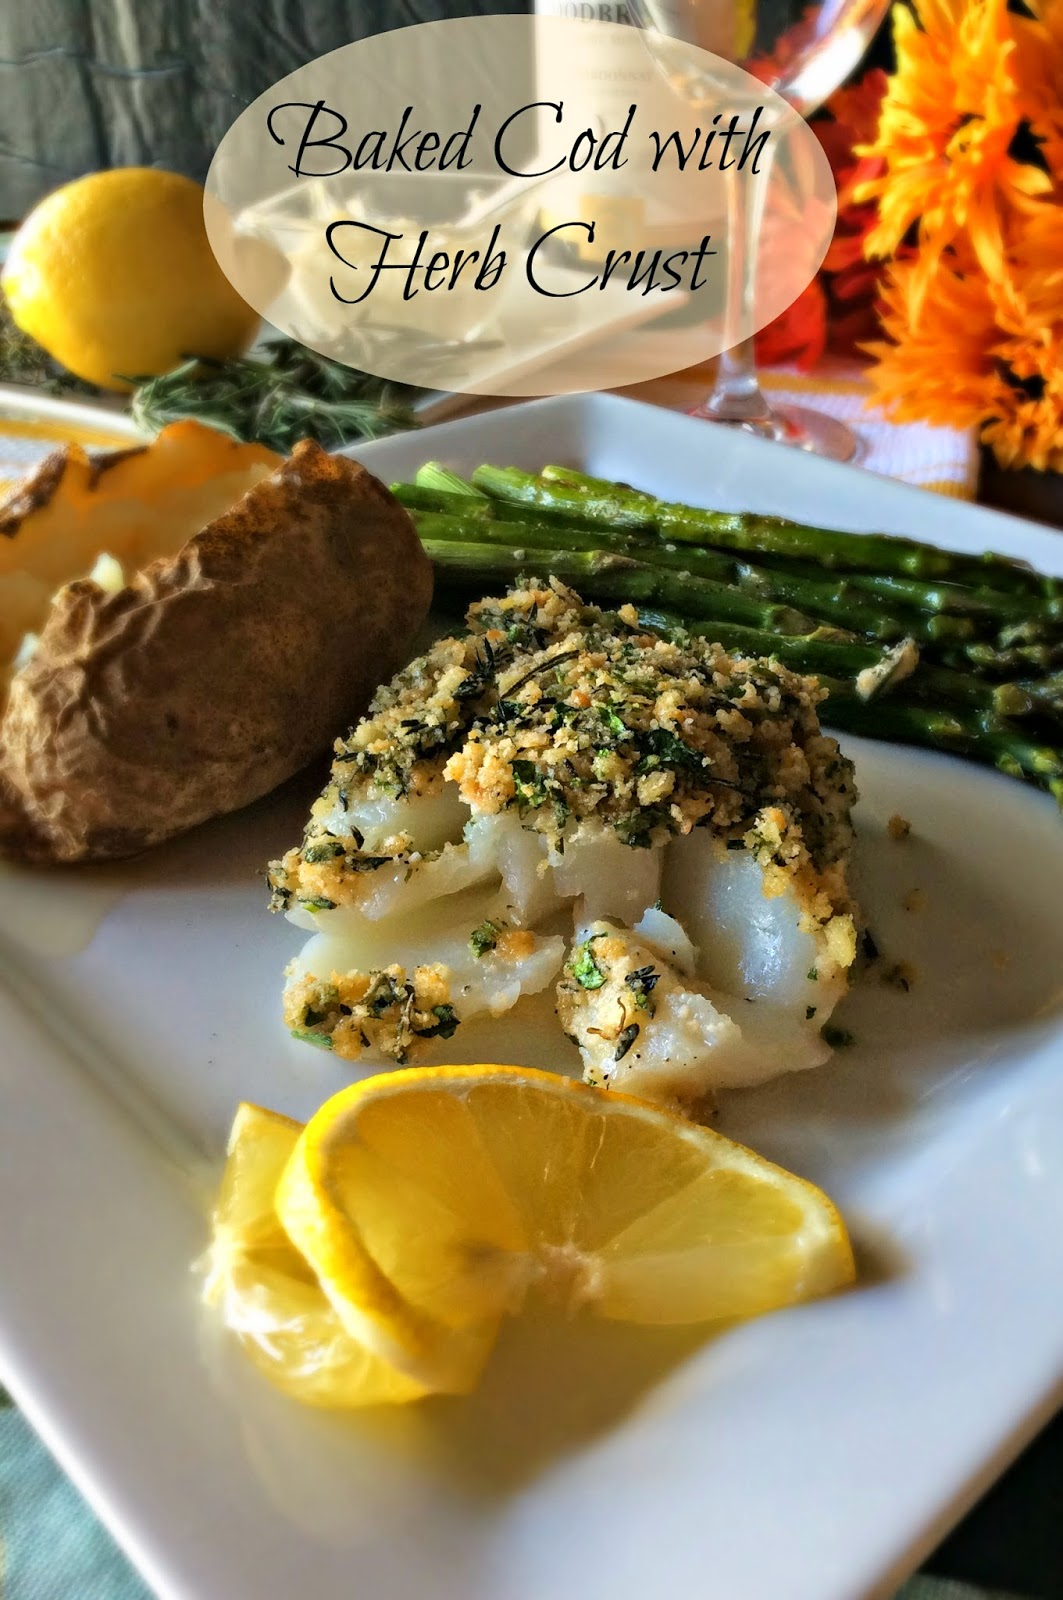 Cooking On A Budget: Baked Cod with Herb Crust